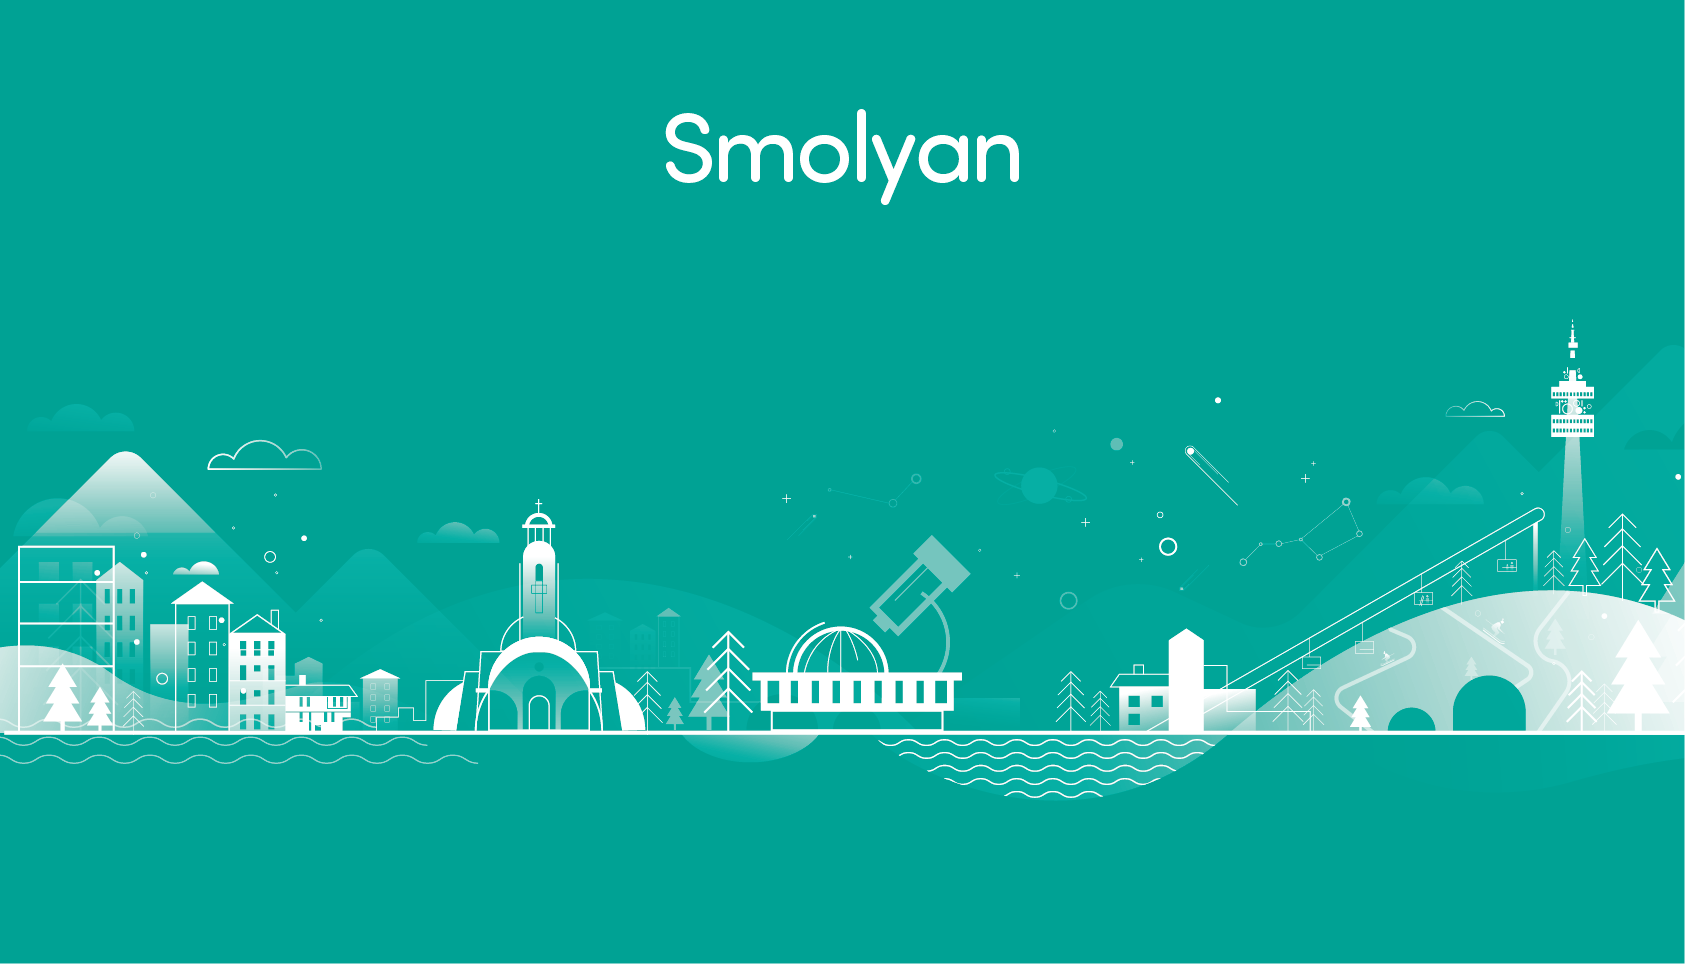 illustrated city of Smolyan from animation